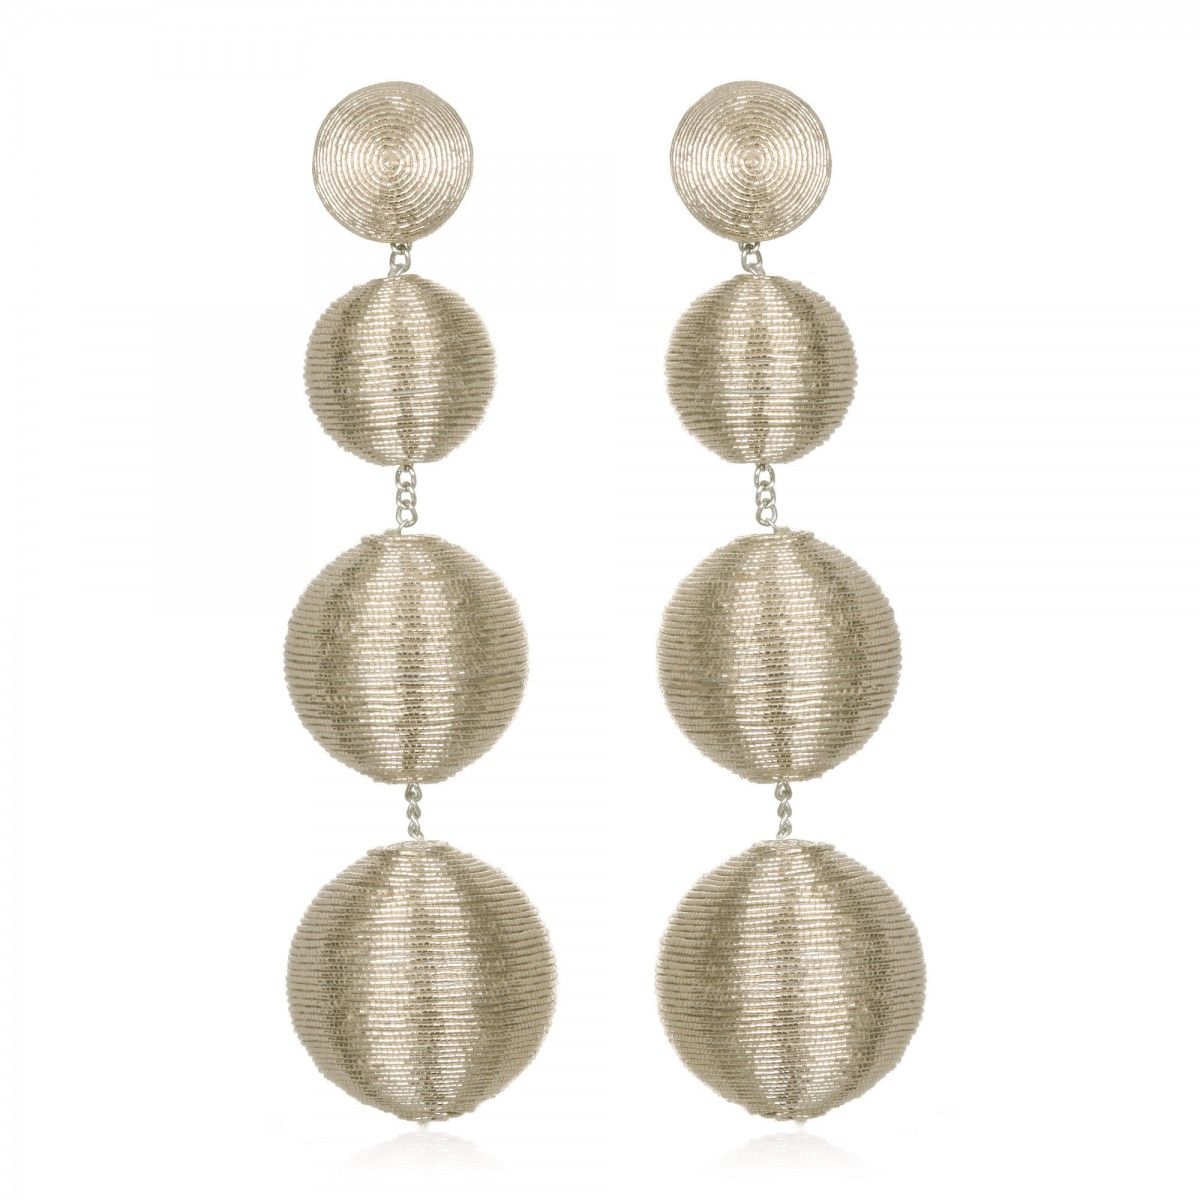 Metallic Silver BonBon Earrings by SUZANNA DAI